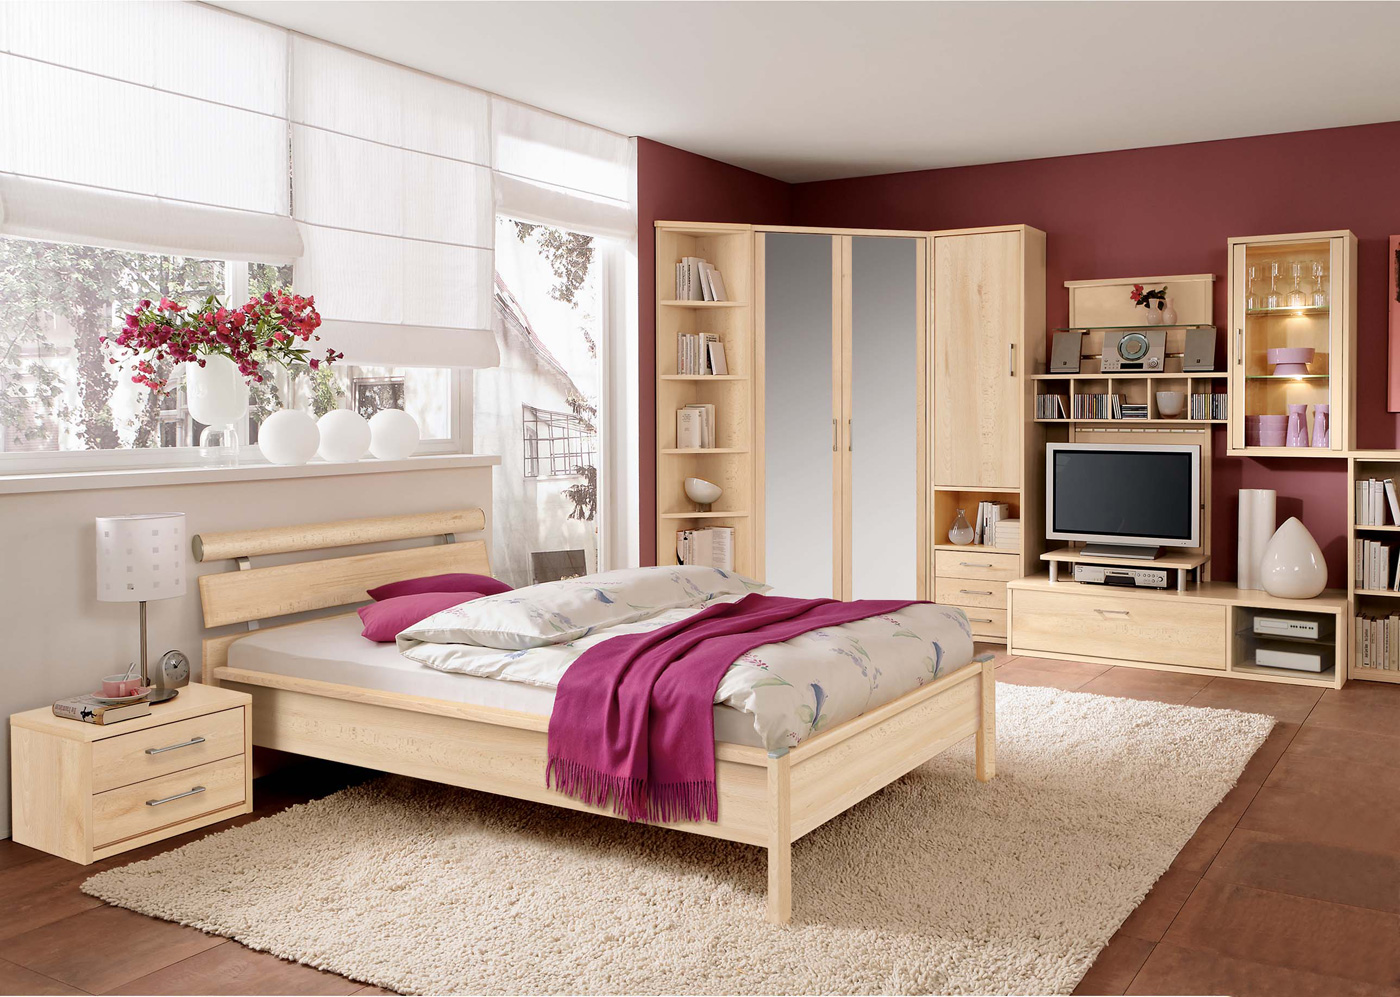 junges wohnen moderne wohnideen zum top preis. Black Bedroom Furniture Sets. Home Design Ideas